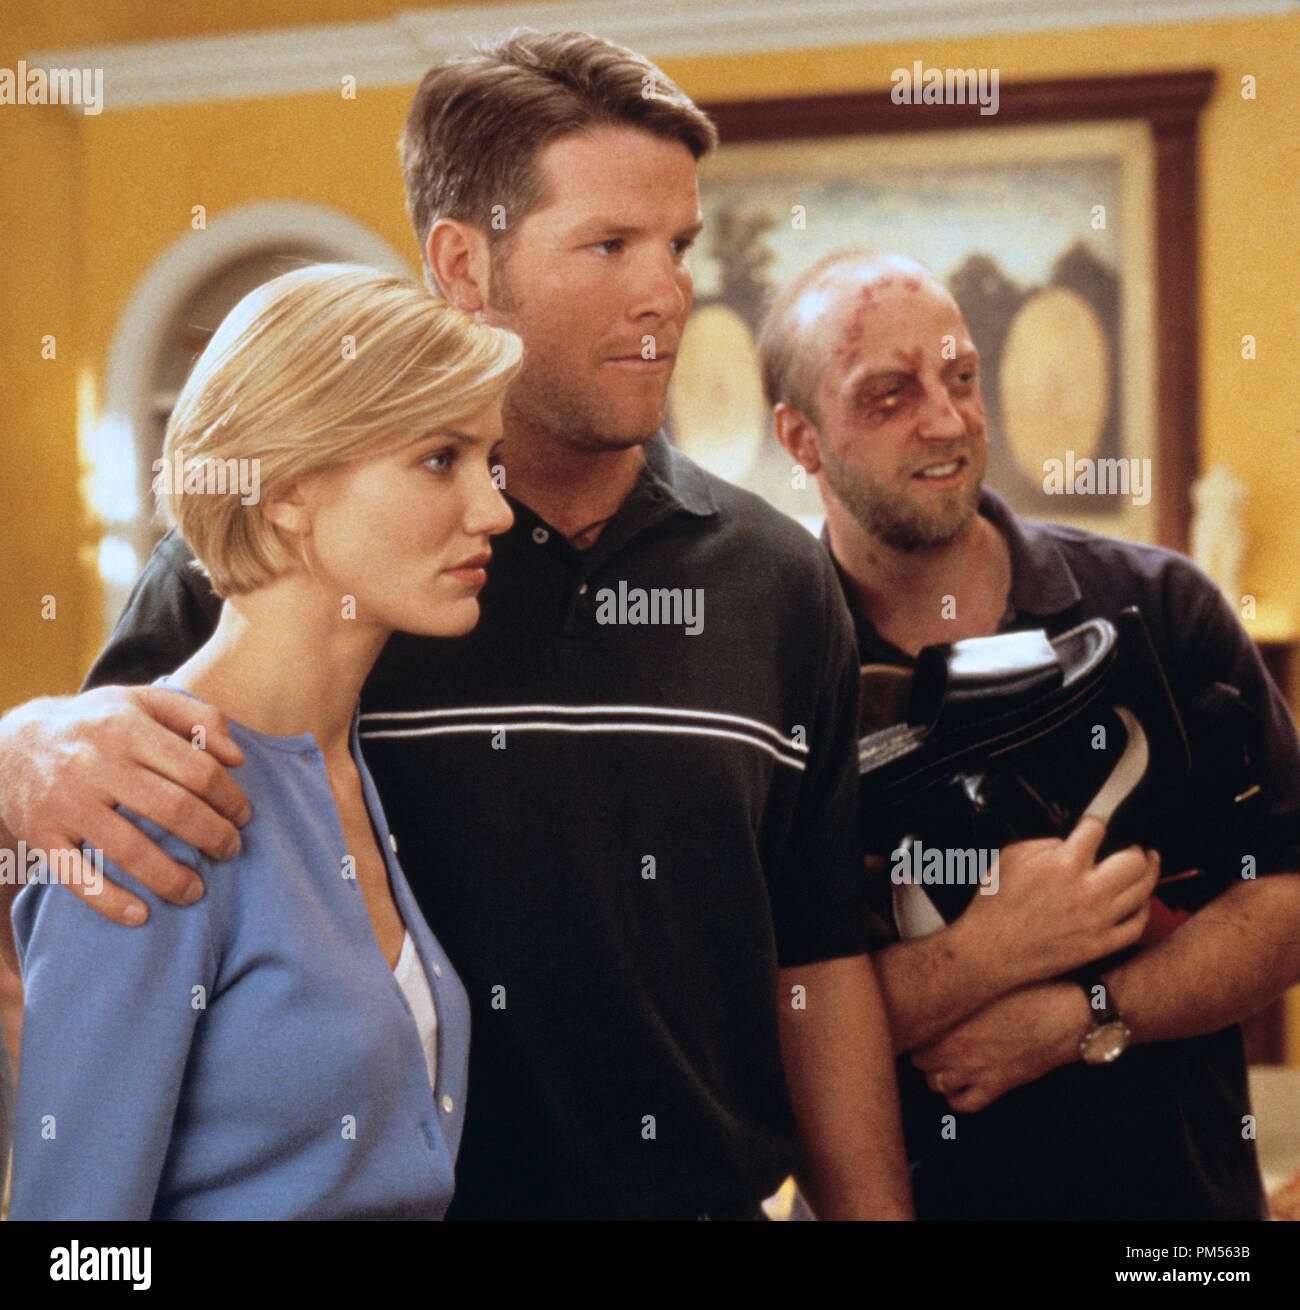 'There's Something About Mary' 1998 Cameron Diaz, Brett Favre, Chris Elliott - Stock Image